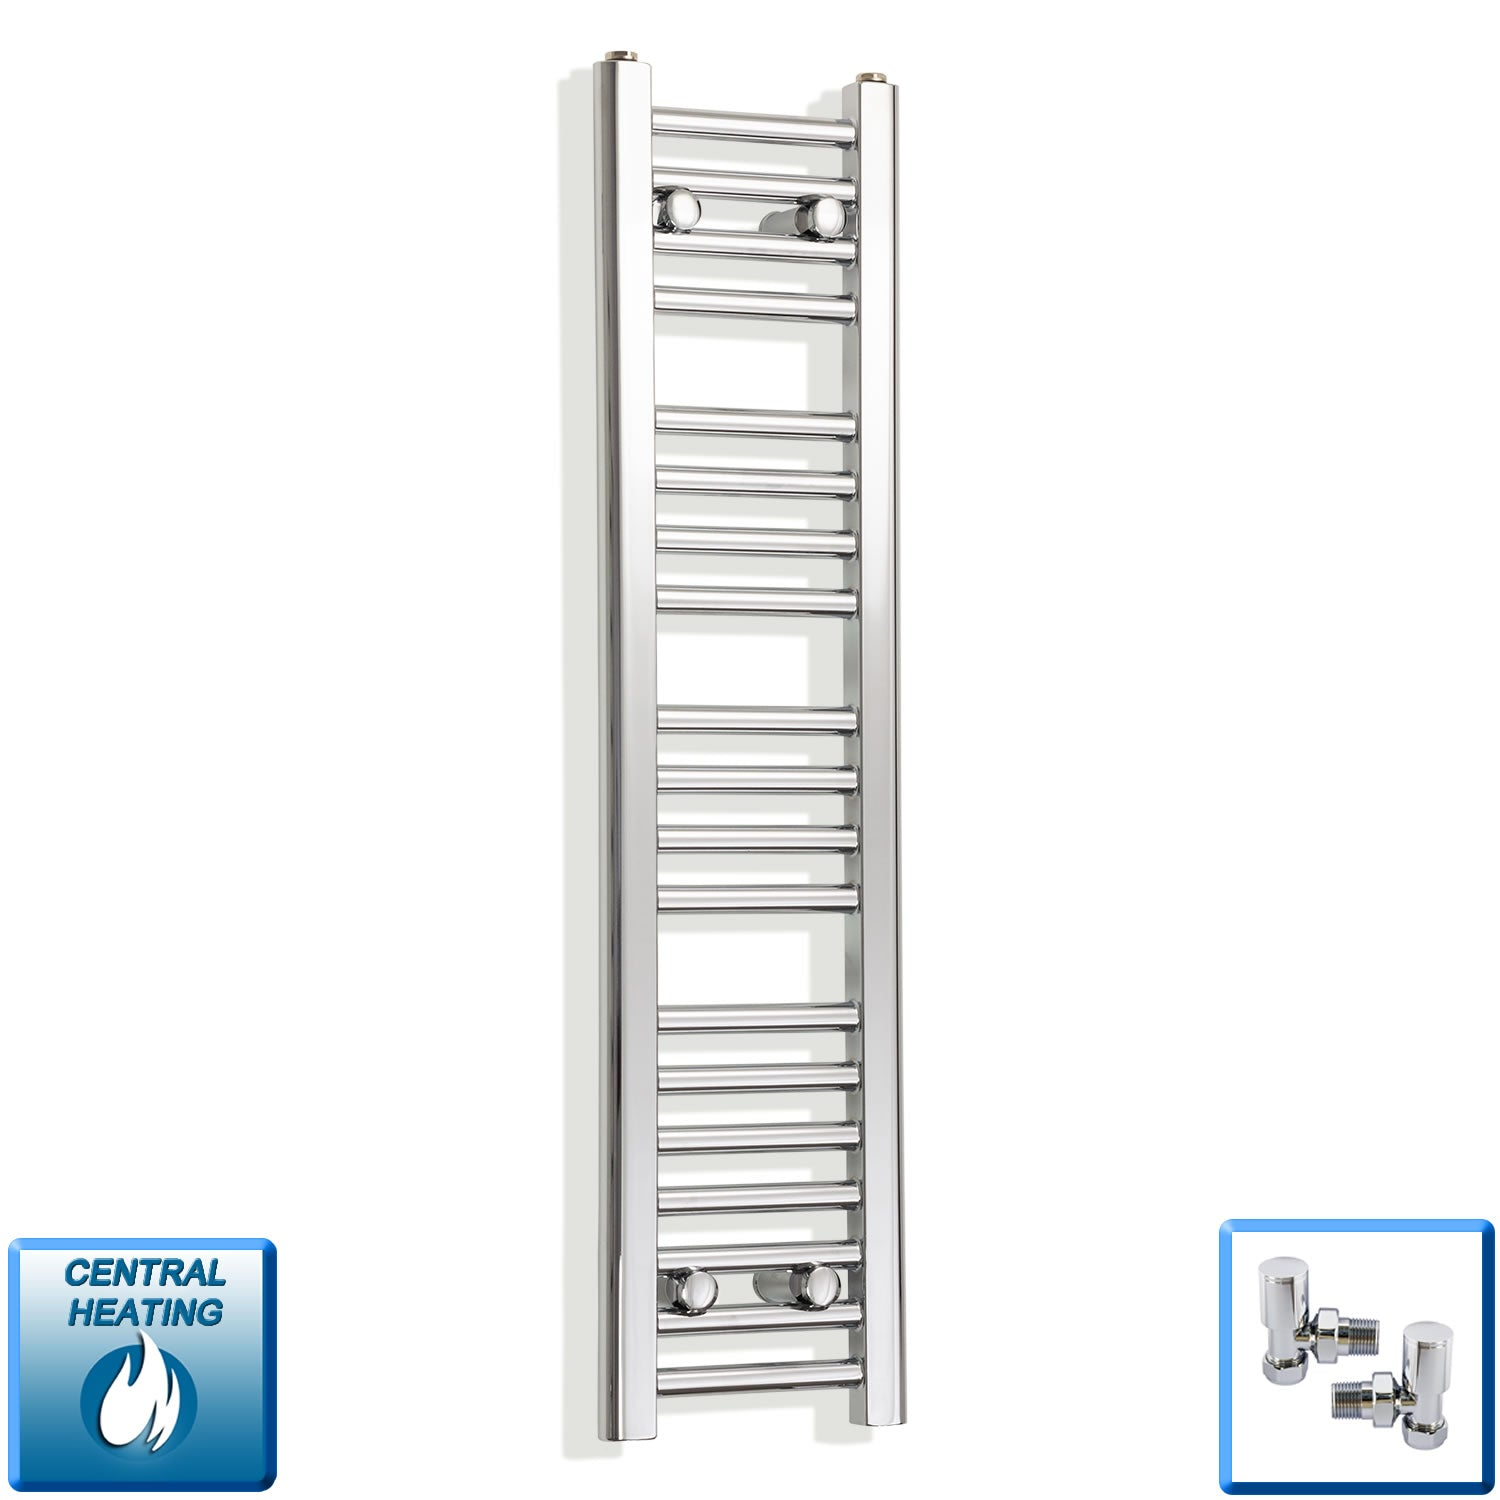 250mm Wide 1000mm High Chrome Towel Rail Radiator With Angled Valve